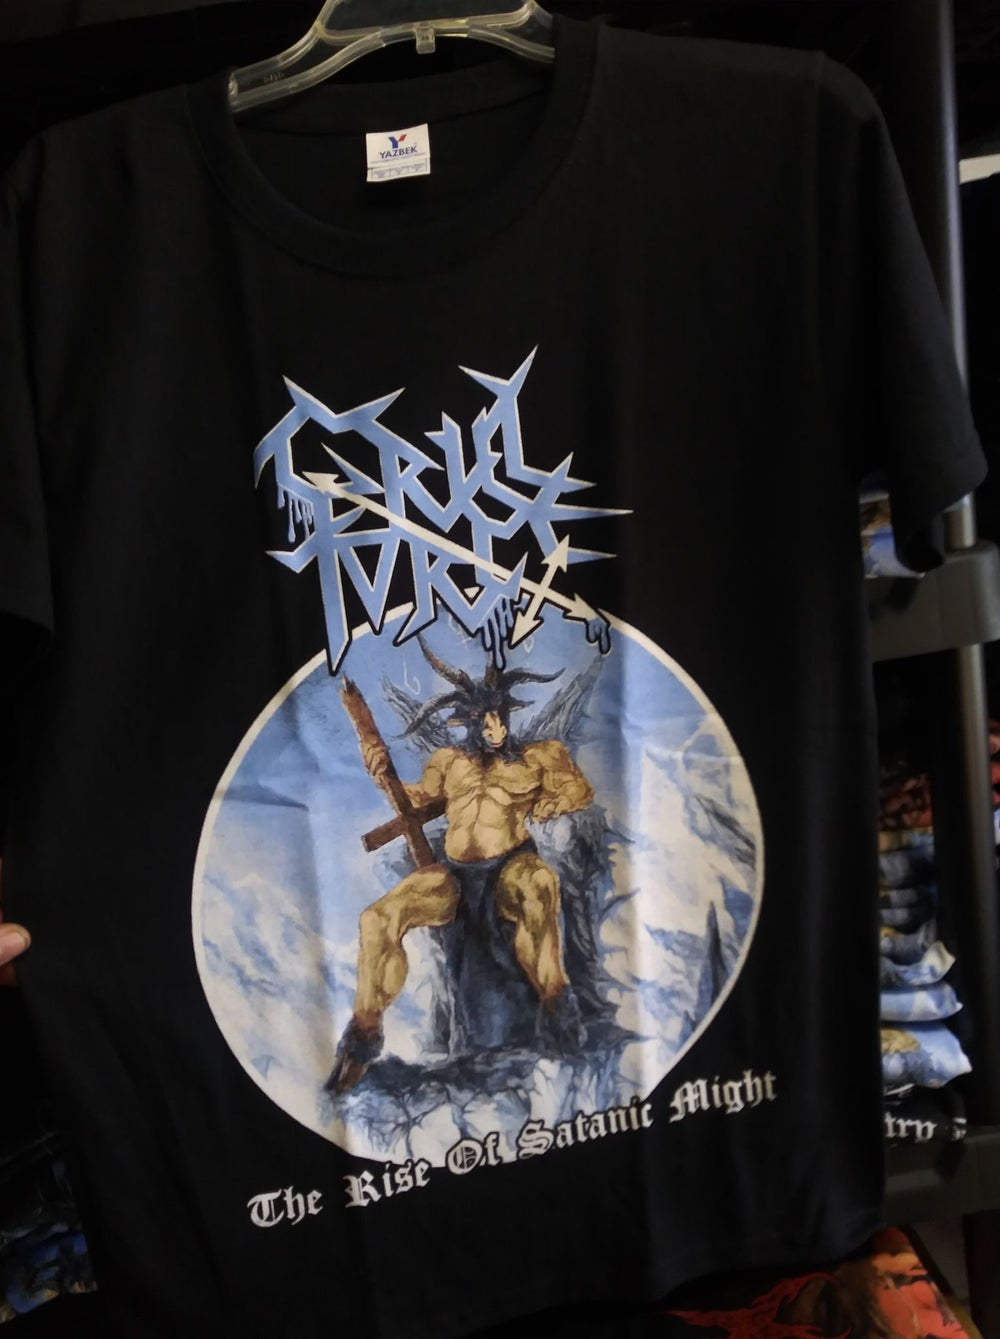 Cruel Force The Rise of Satanic Might T-SHIRT *Imported*